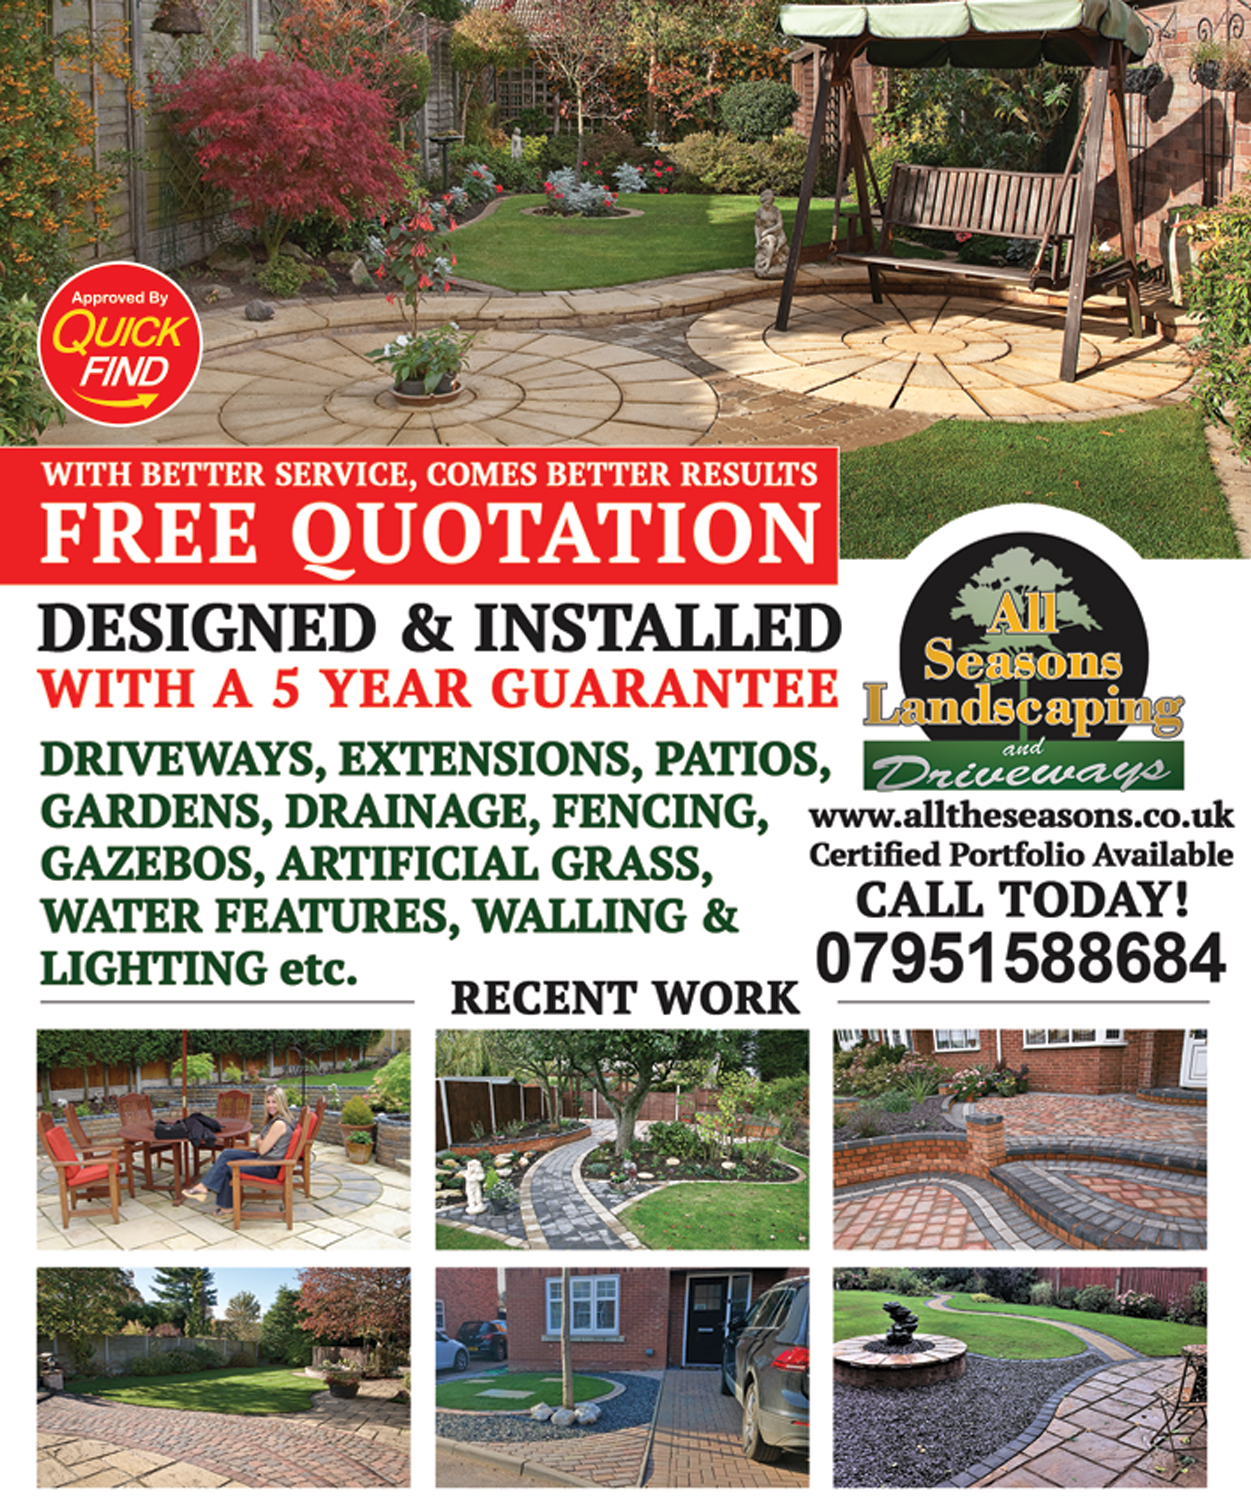 All Seasons Landscaping and Driveways